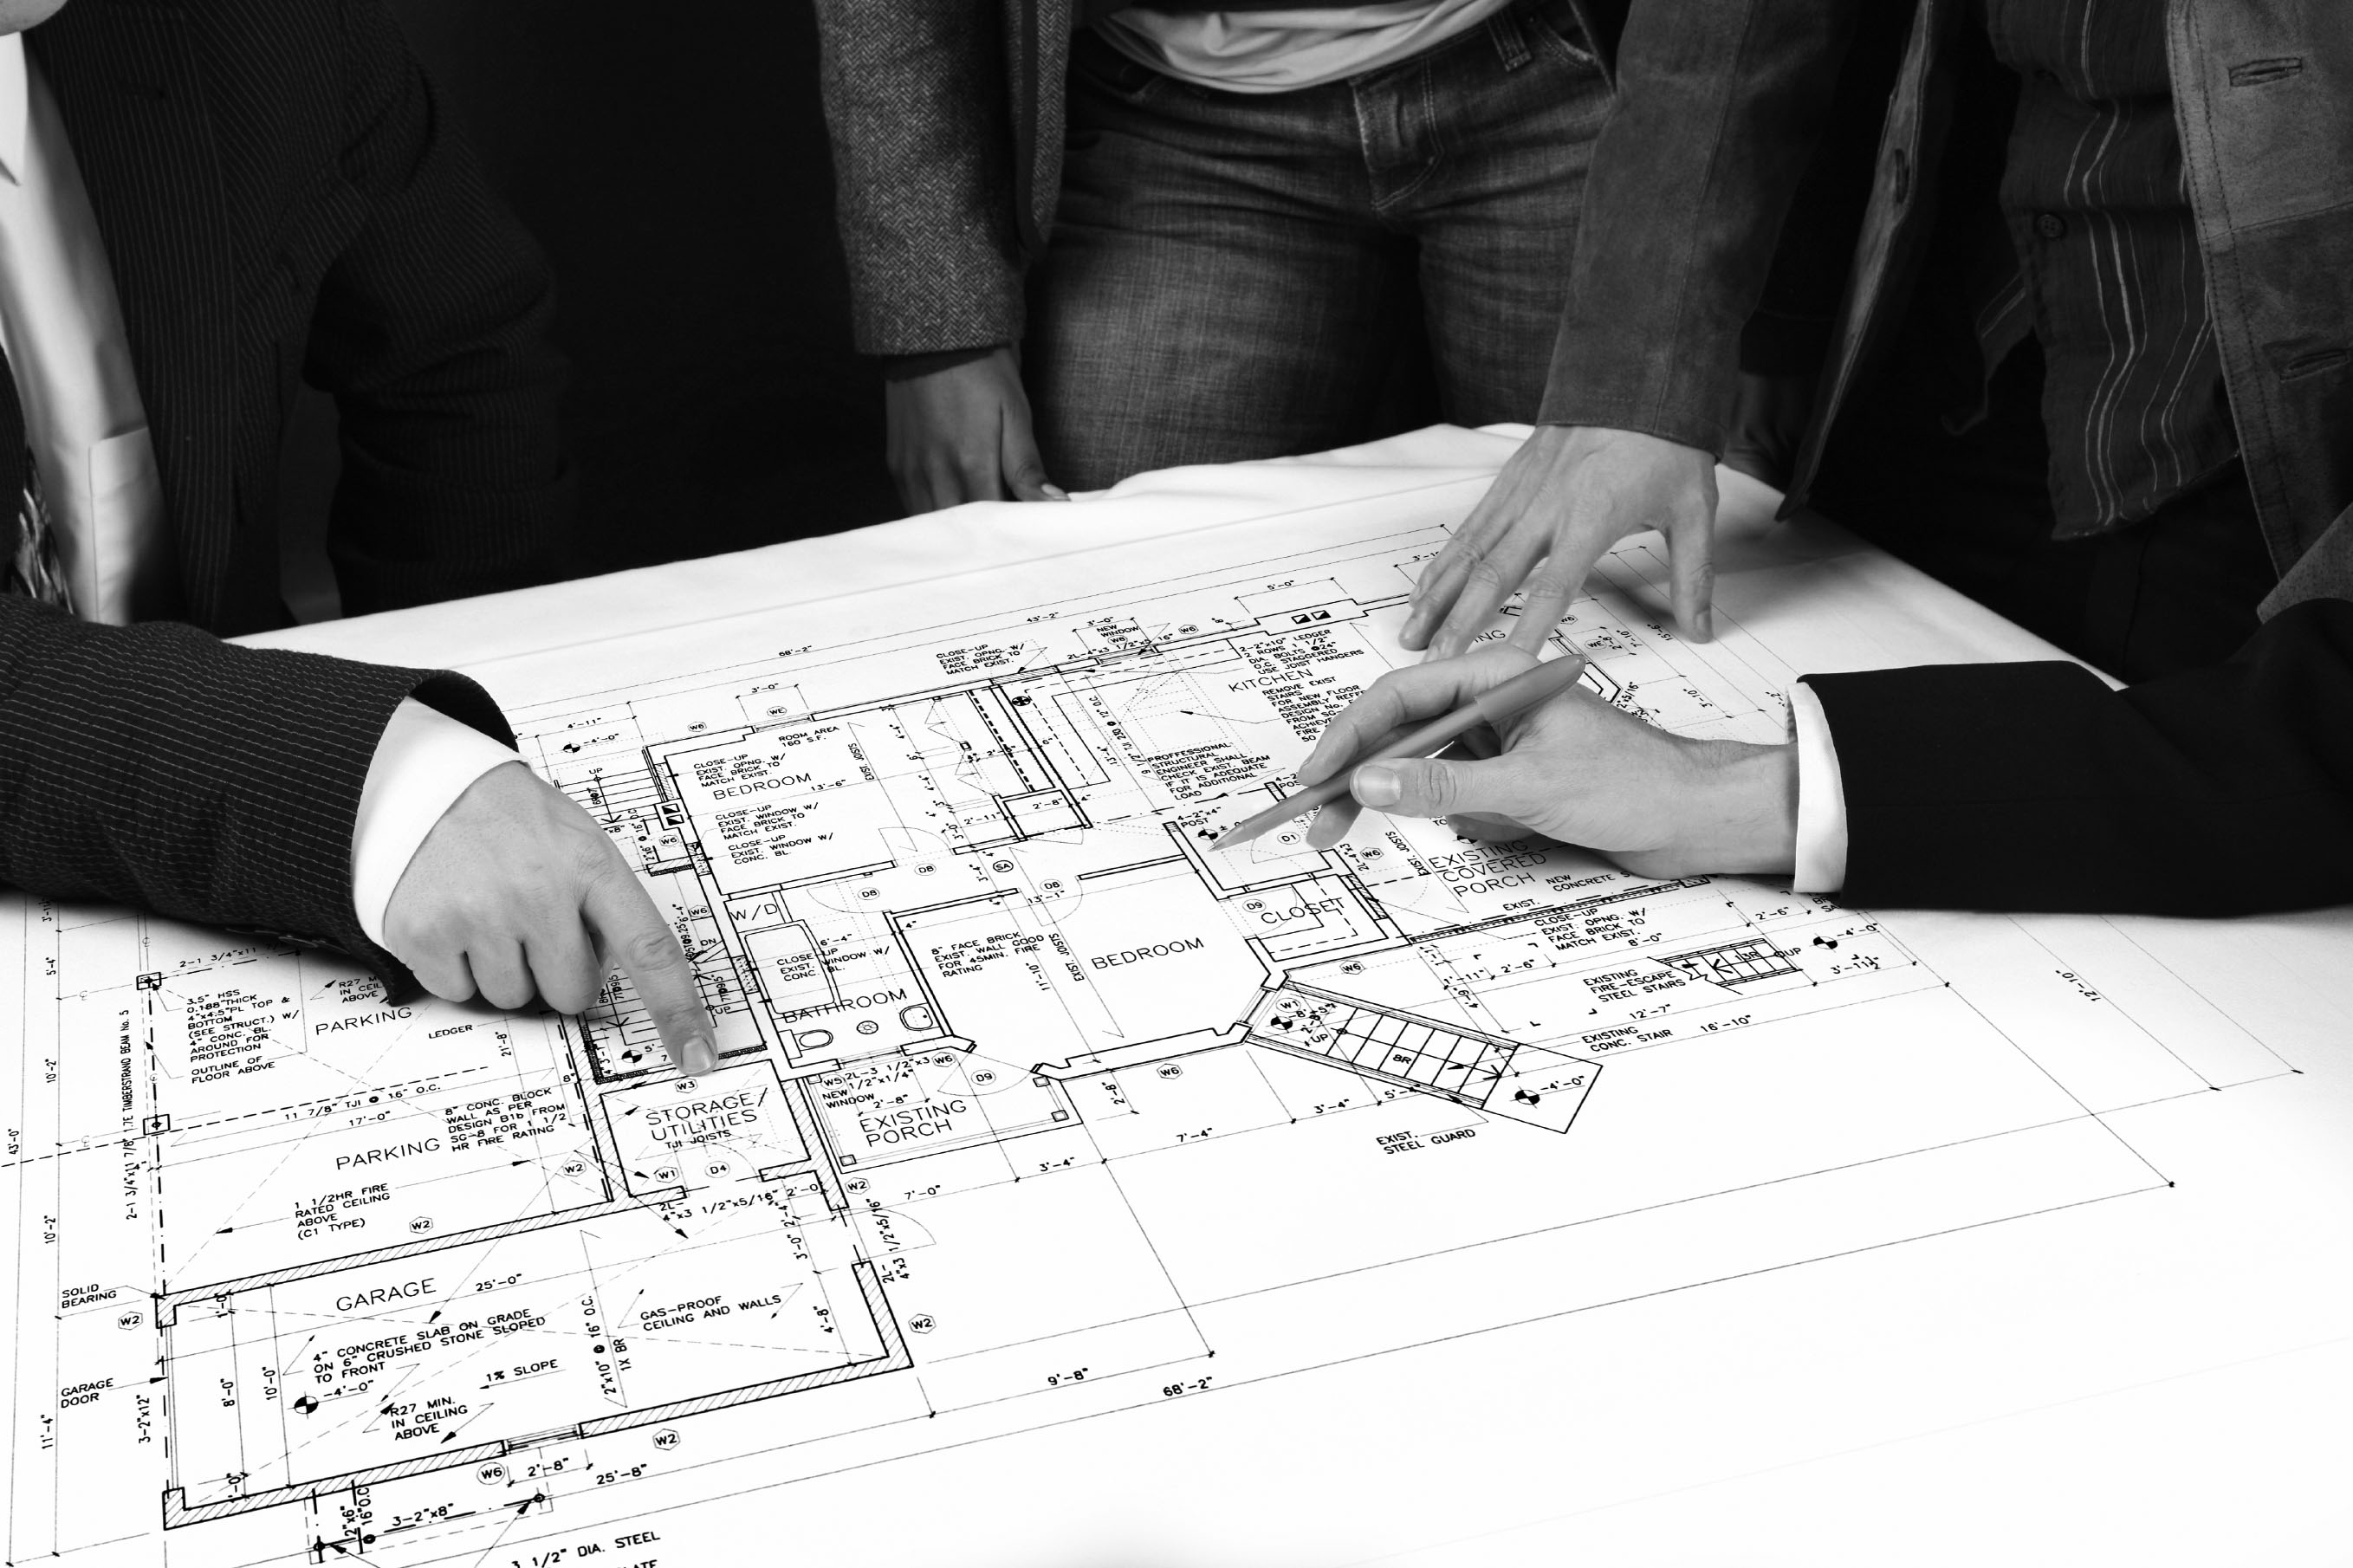 Looking at house plans iStock_000002390840Large